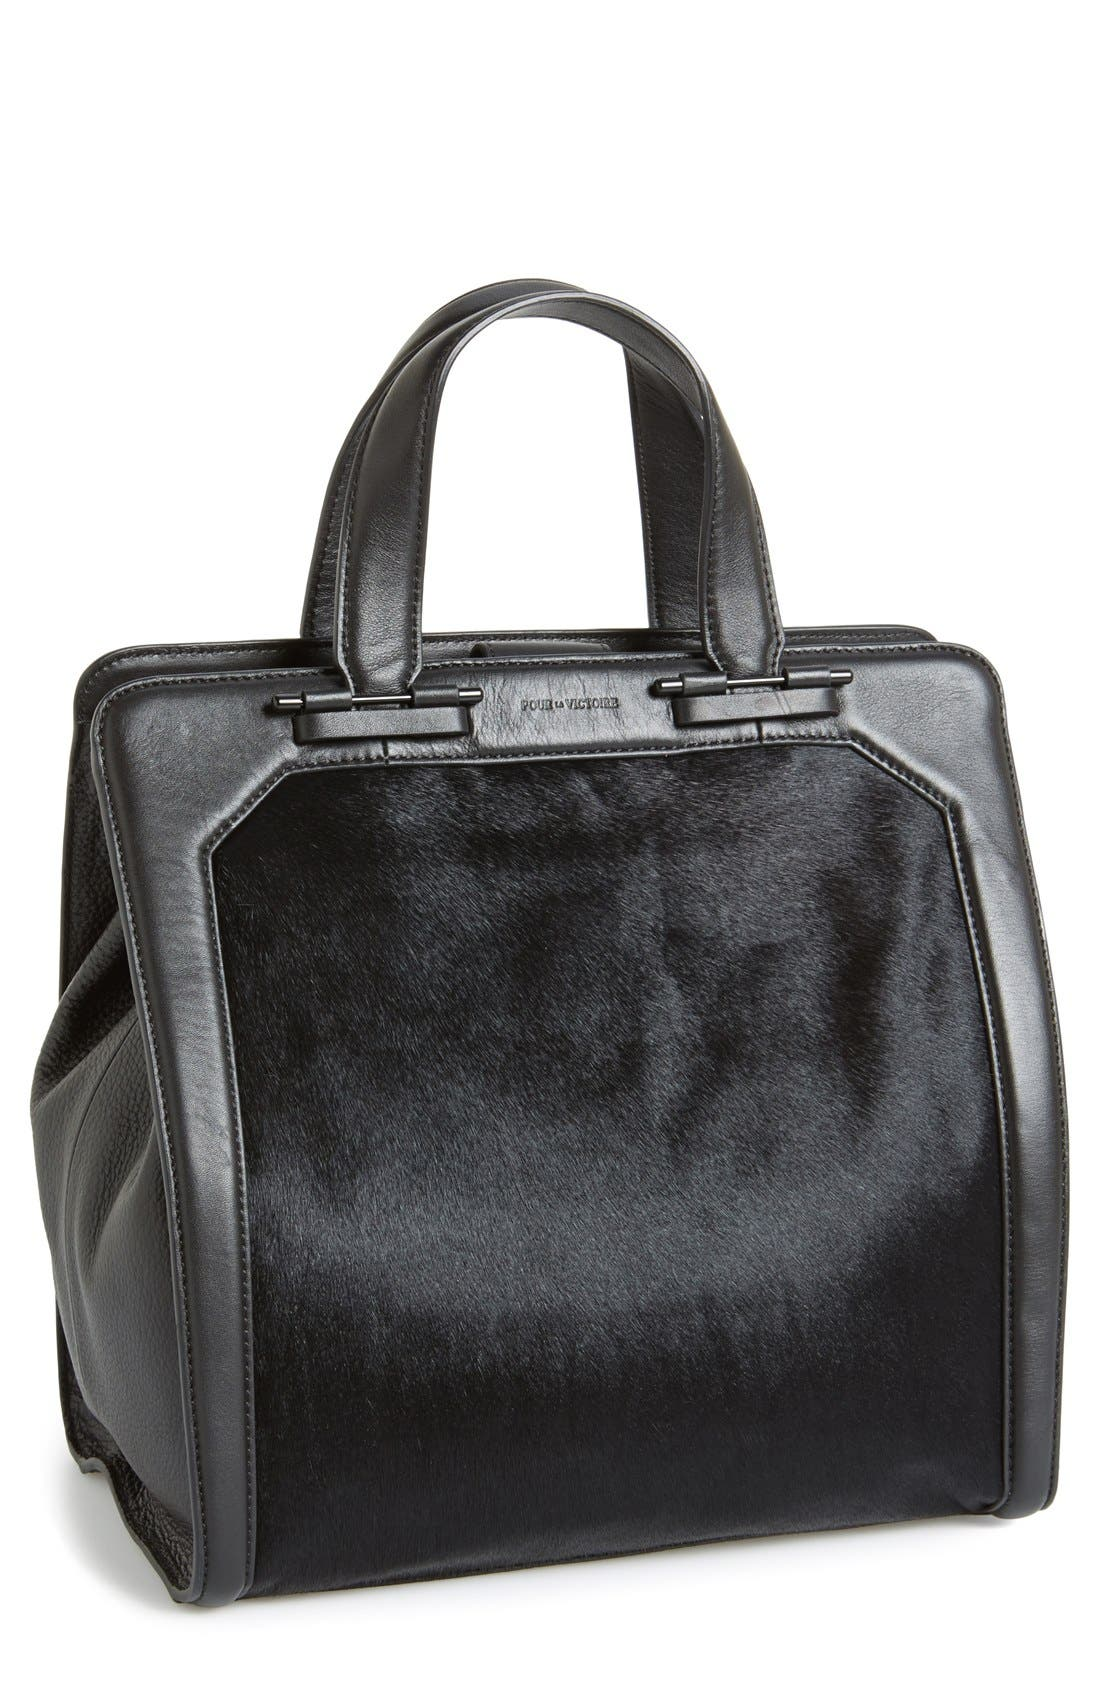 Main Image - Pour la Victoire 'Servant' Leather & Genuine Calf Hair Tote